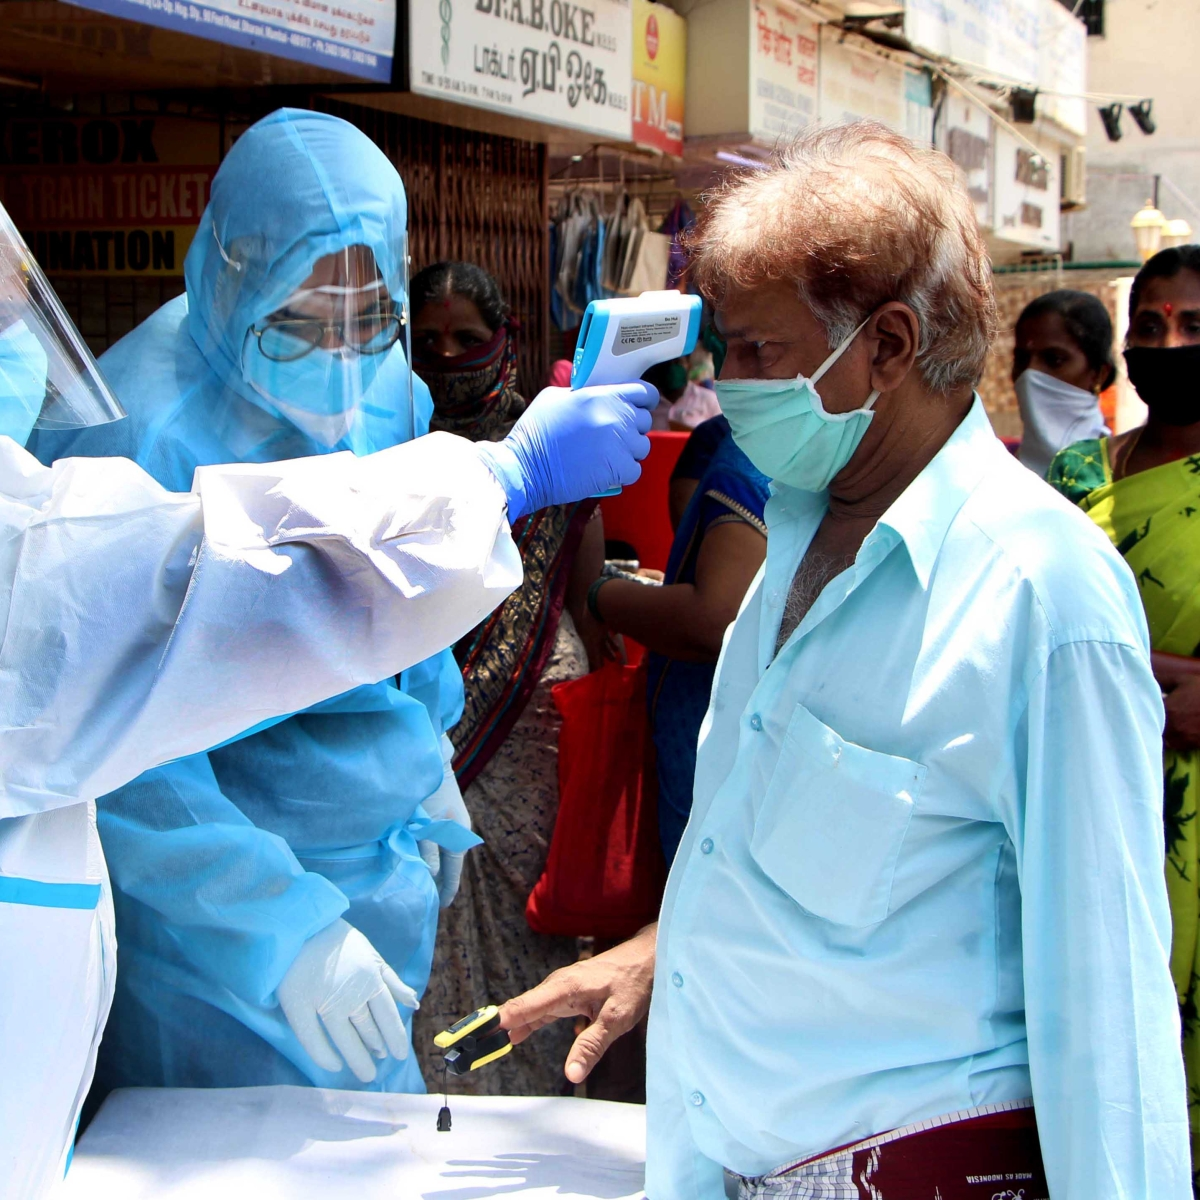 With record spike of 7,074 new COVID-19 cases, Maharashtra's coronavirus tally crosses 2 lakh